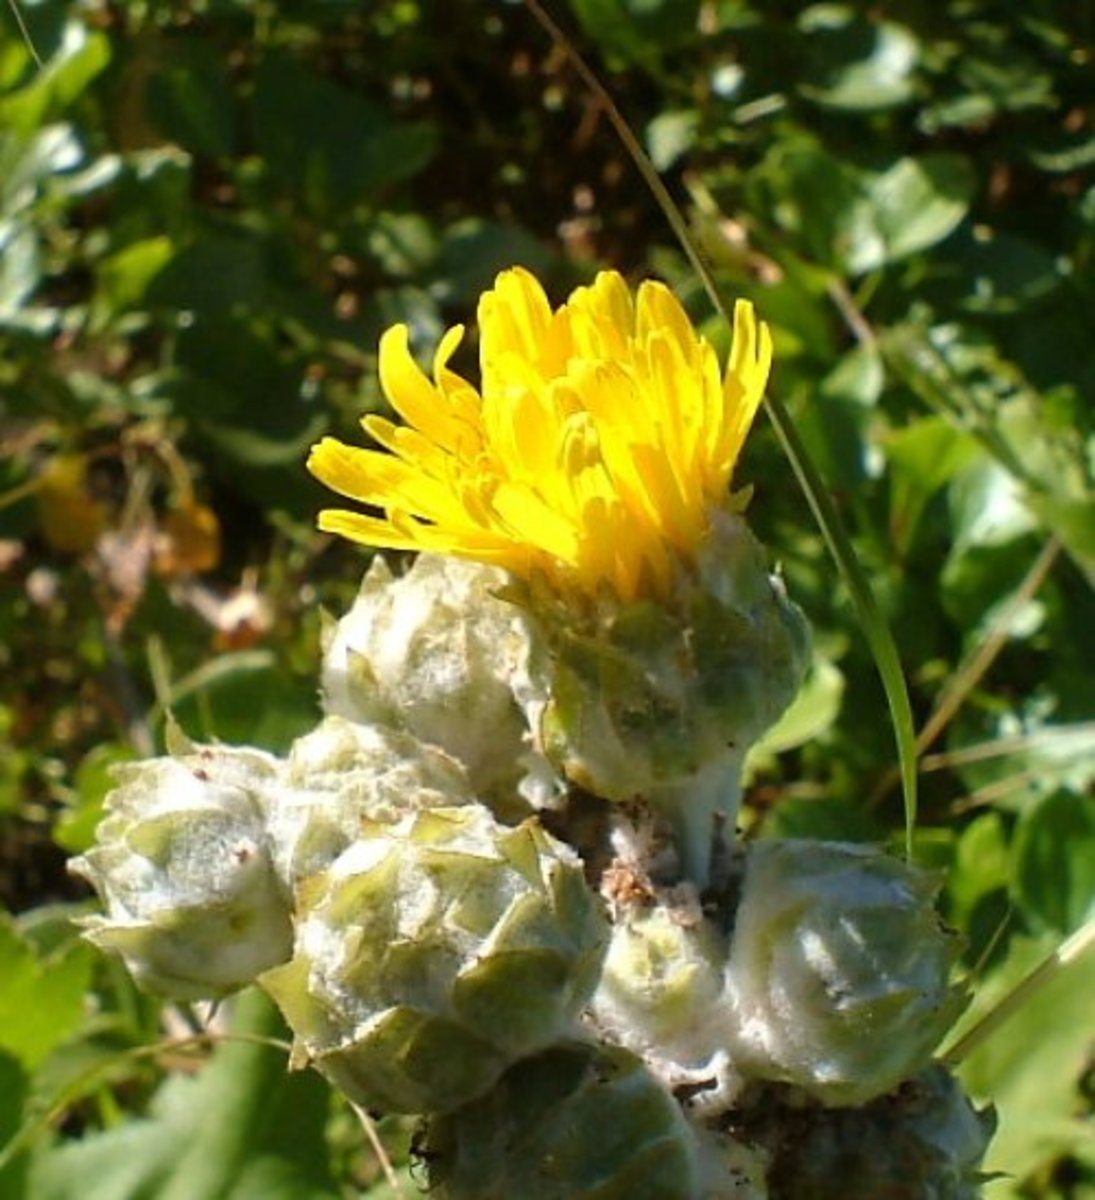 Canary Island Sowthistle Photo by Steve Andrews